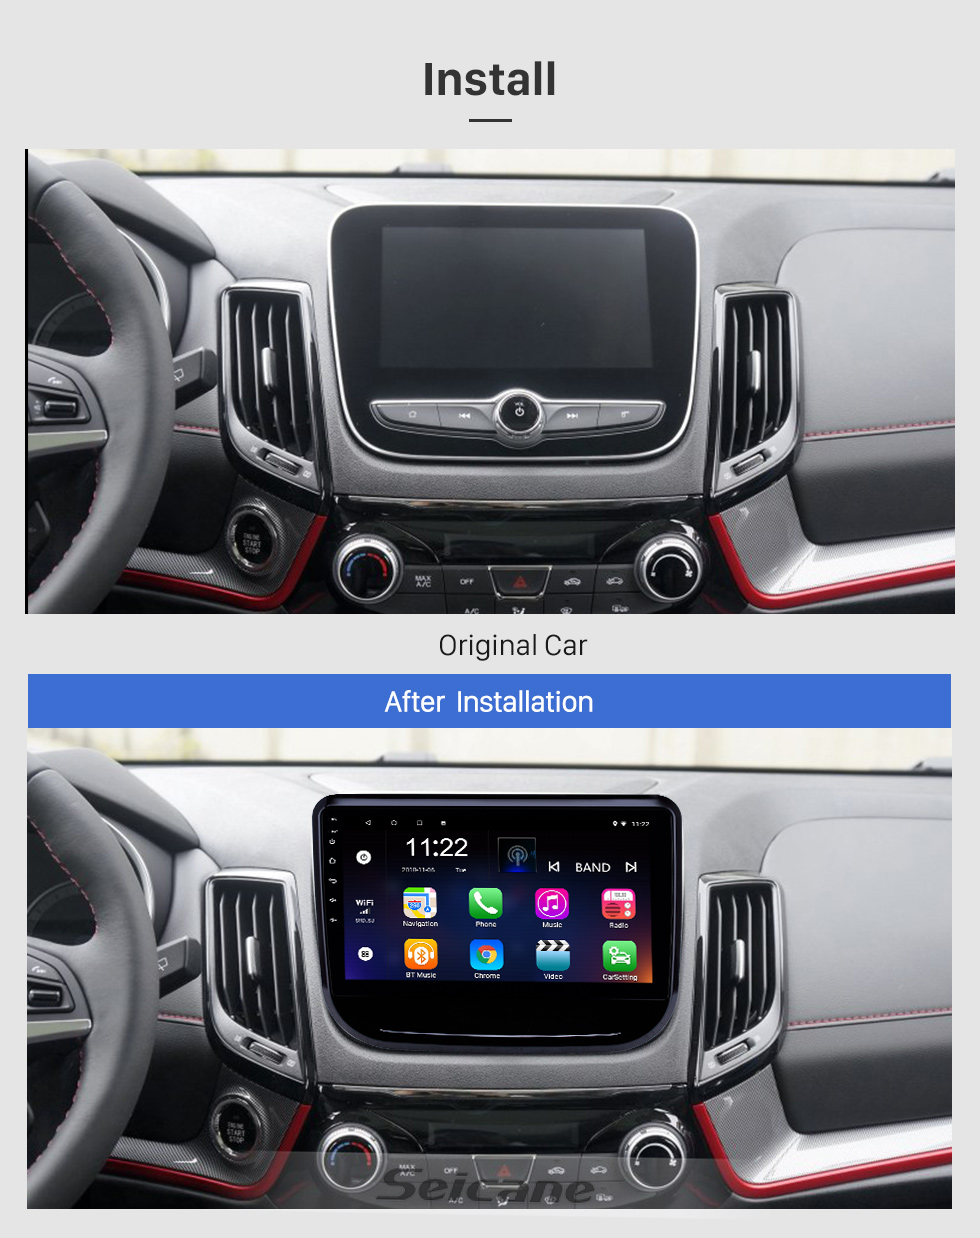 Seicane 10.1 inch Android 8.1 GPS Navigation Radio for 2017-2018 Changan CS55 with HD Touchscreen Bluetooth USB support Carplay TPMS